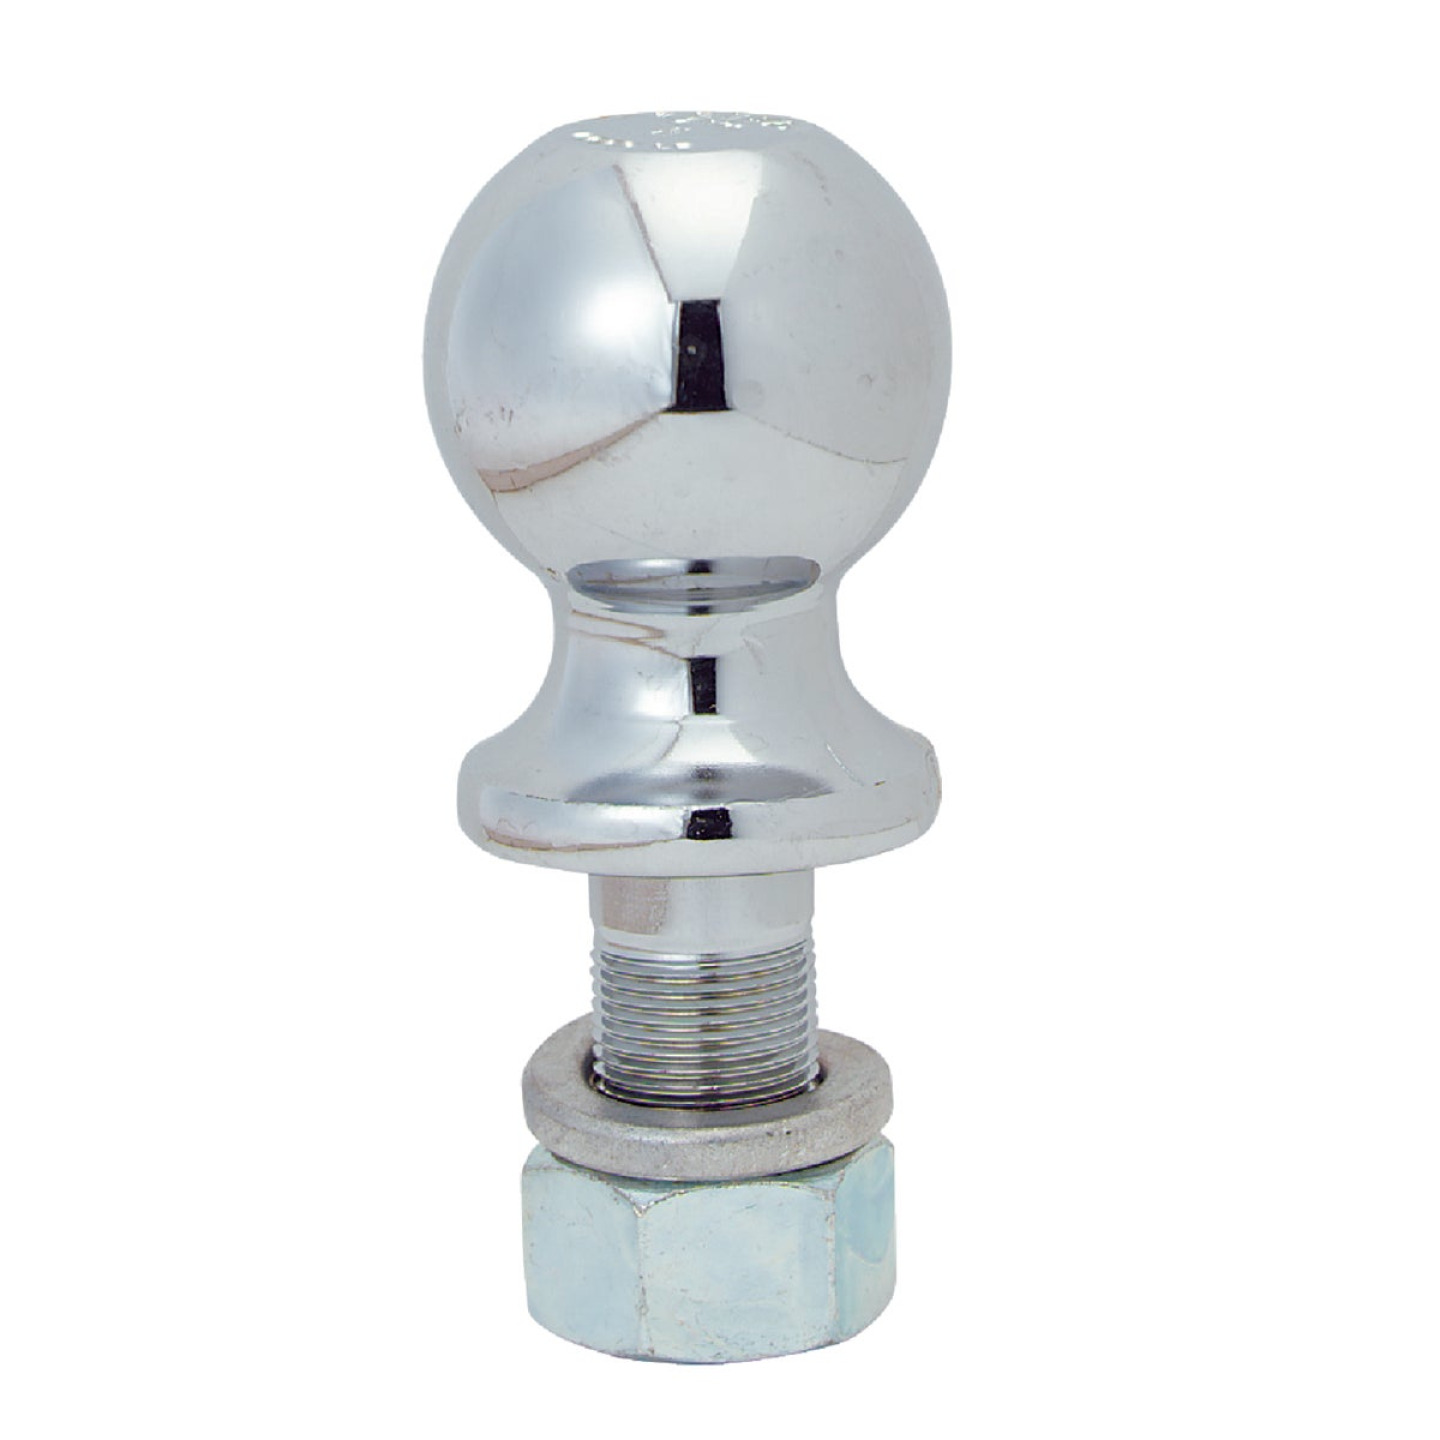 Reese Towpower 2-5/16 In. x 1 In. x 2 In. Hitch Ball Image 1